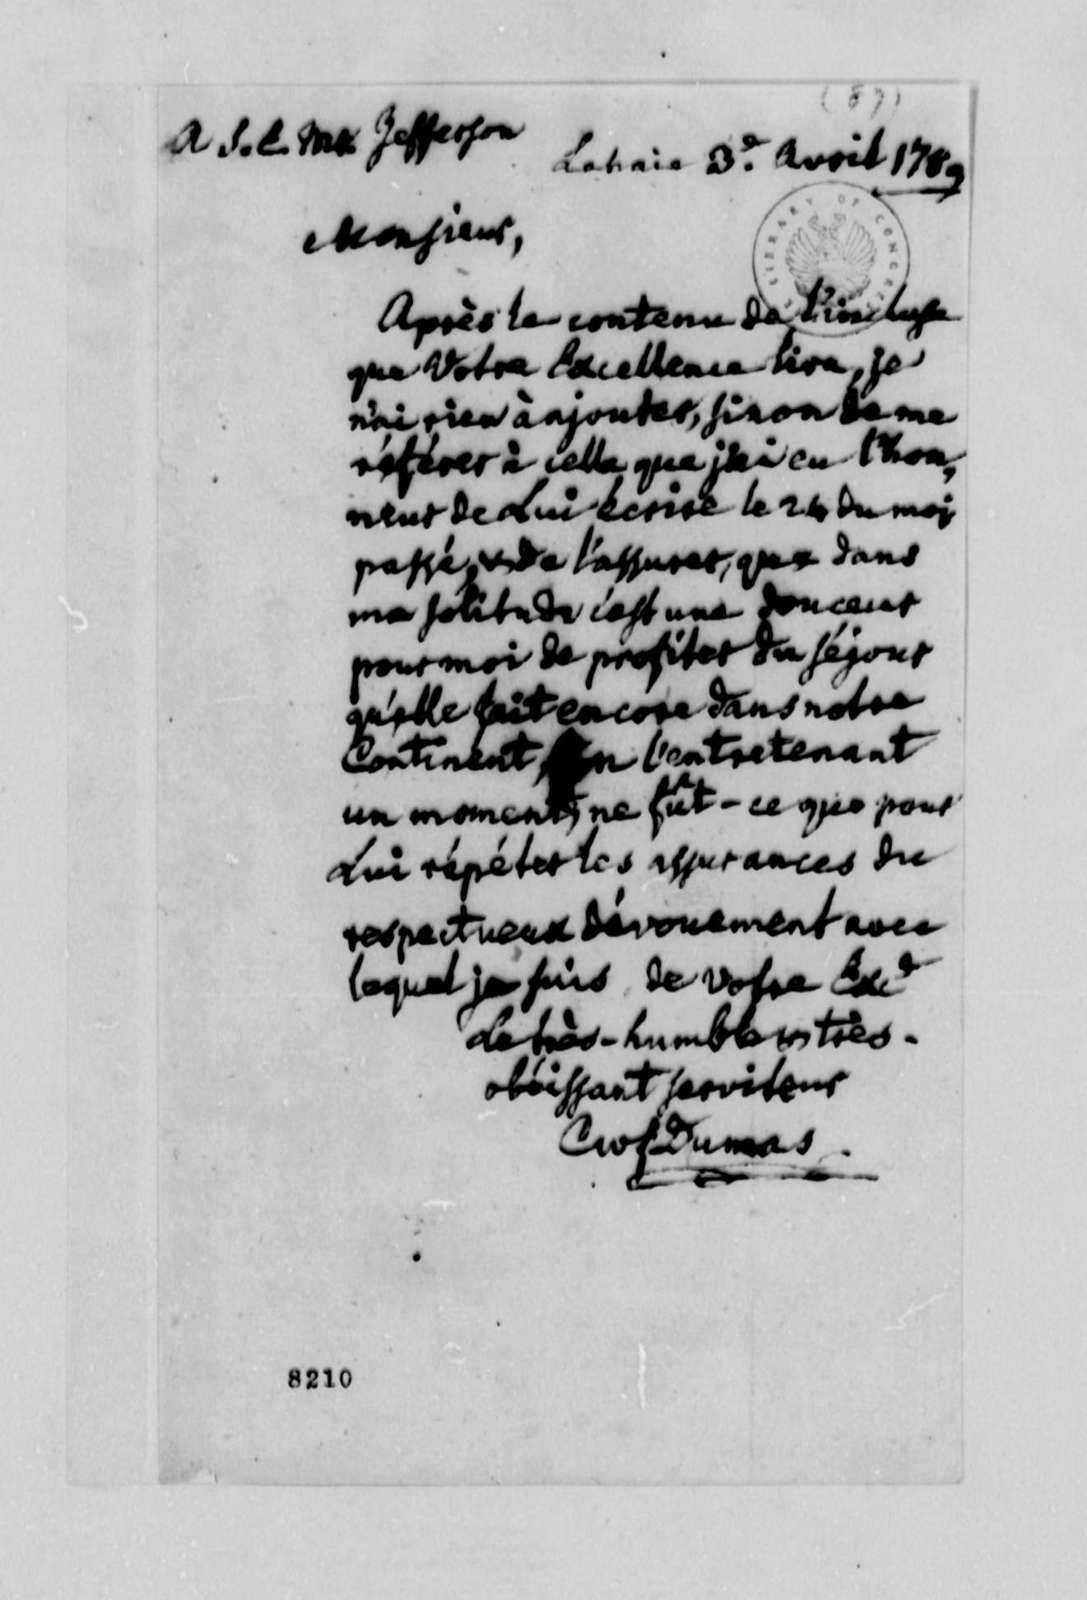 Charles W. F. Dumas to Thomas Jefferson, April 3, 1789, in French